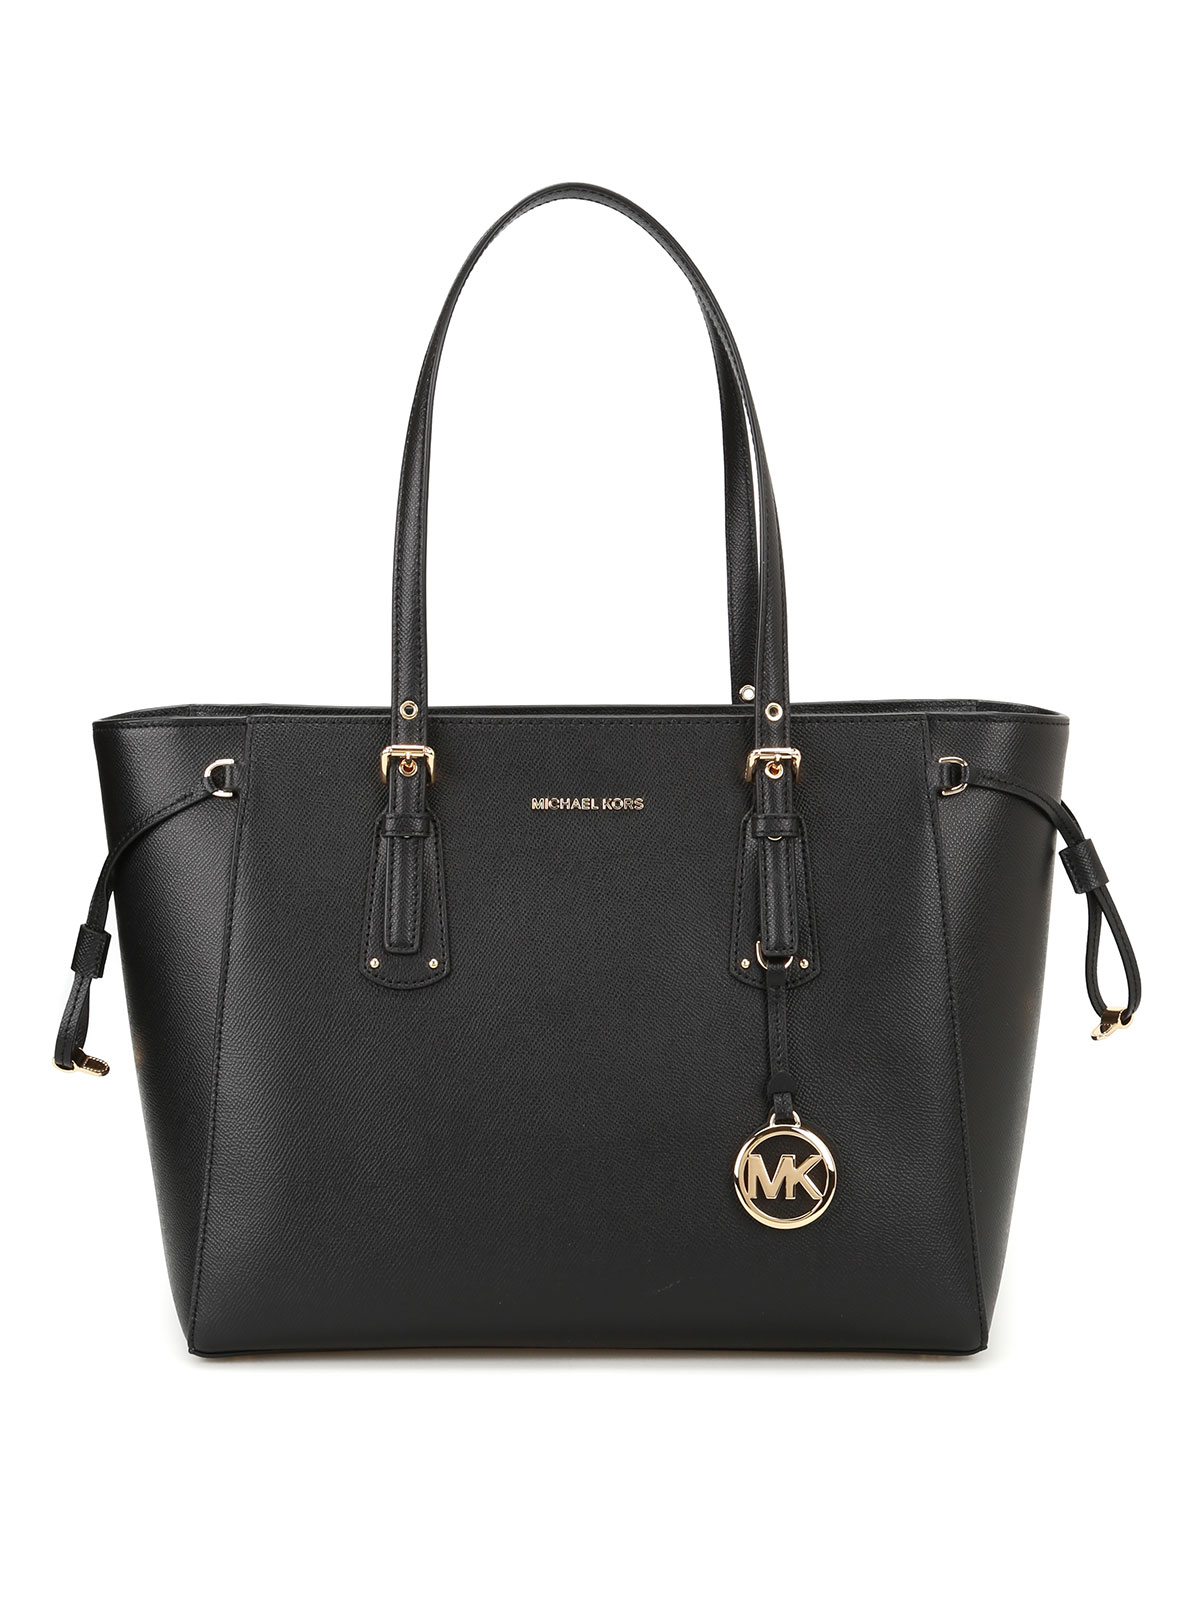 voyager leather medium shopper by michael kors totes. Black Bedroom Furniture Sets. Home Design Ideas